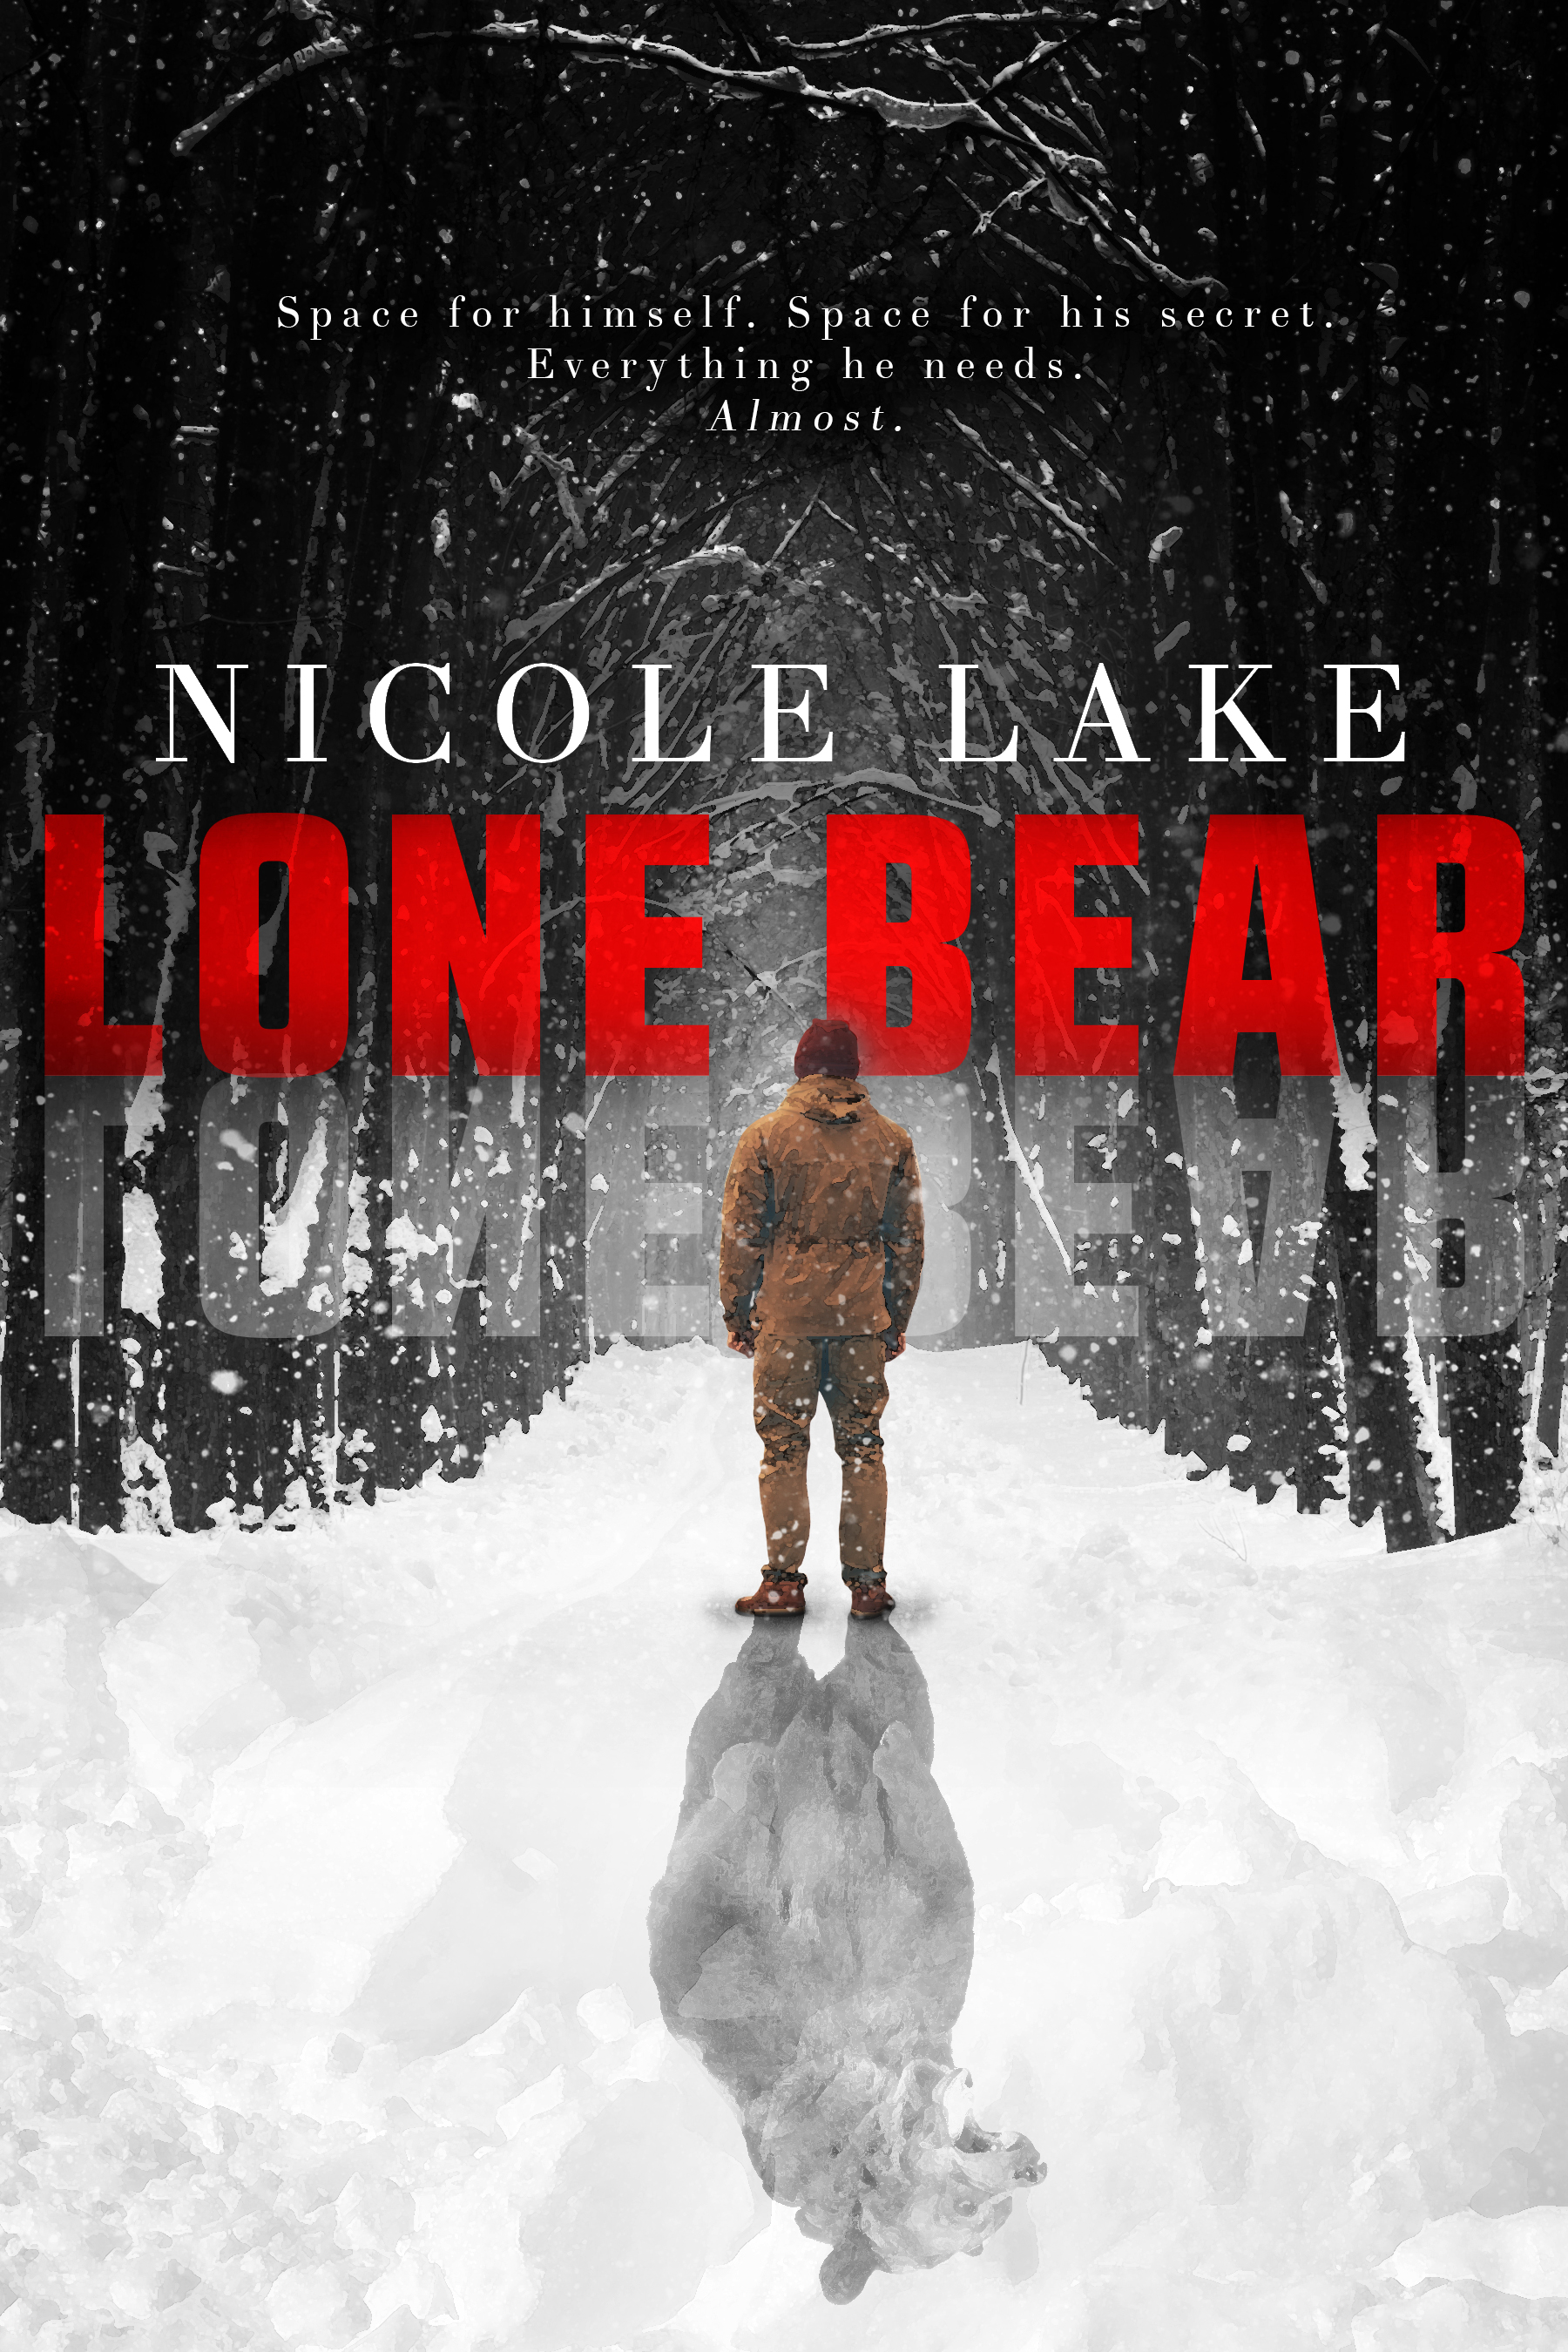 "Lone Bear cover: A man bundled for cold weather stares into a wintry forest. Behind him, his shadow forms the image of a bear. Above the man's head is the book cover, ""Lone Bear"", the author's name, Nicole Lake, and the tag line ""Space for himself. Space for his secret. Everything he needs. Almost."""